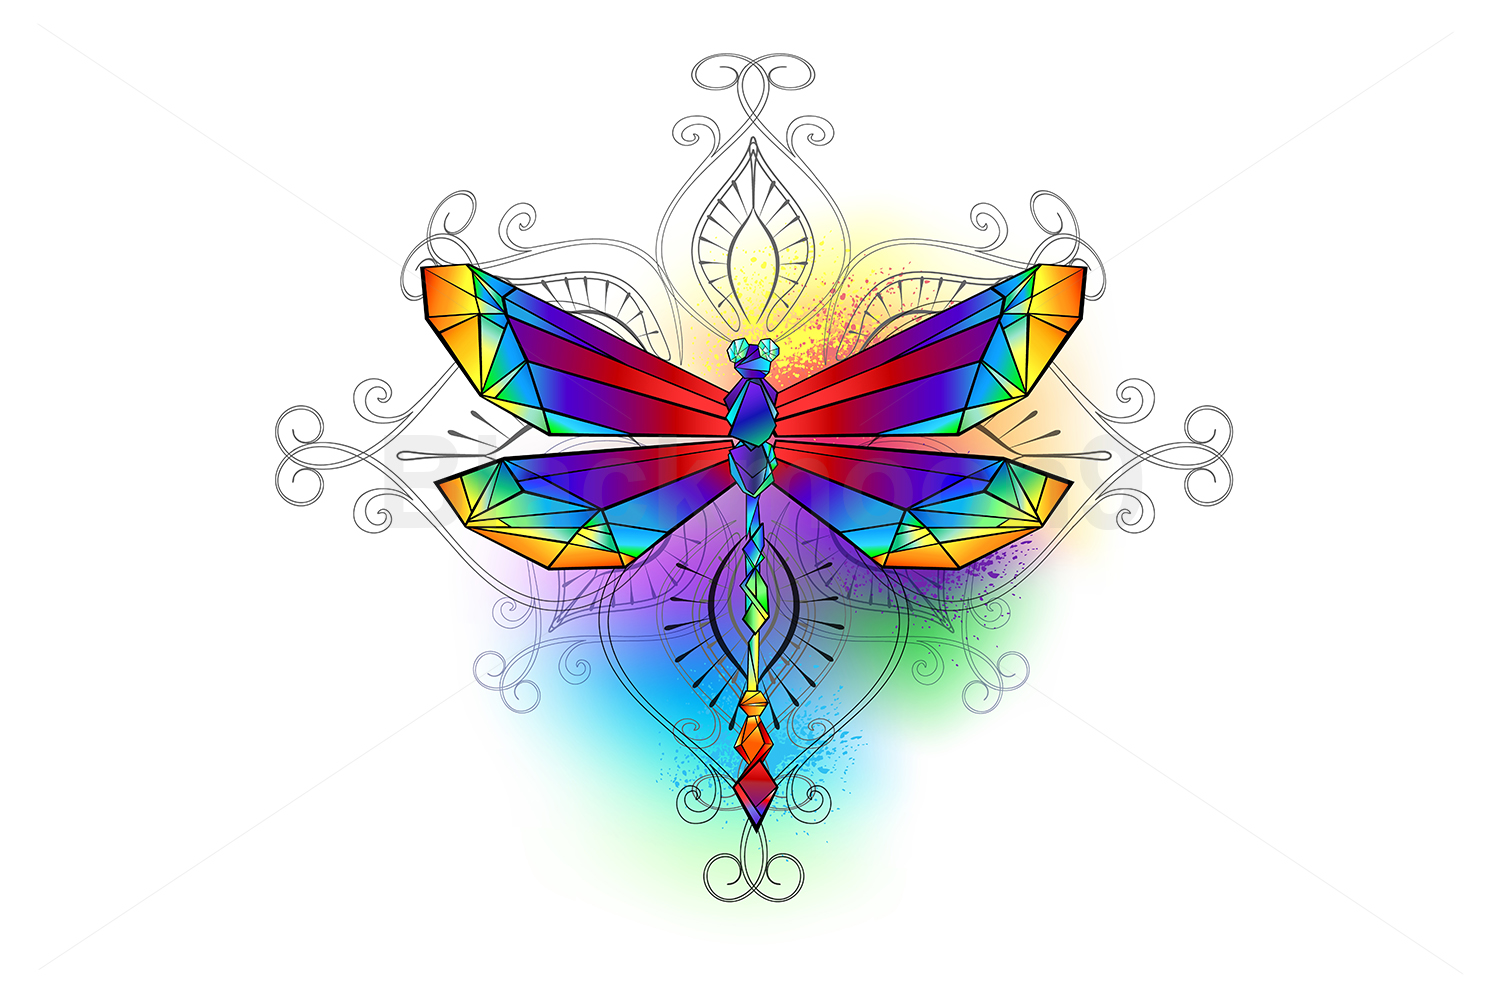 Download Free Bright Polygonal Dragonfly Graphic By Blackmoon9 Creative Fabrica for Cricut Explore, Silhouette and other cutting machines.